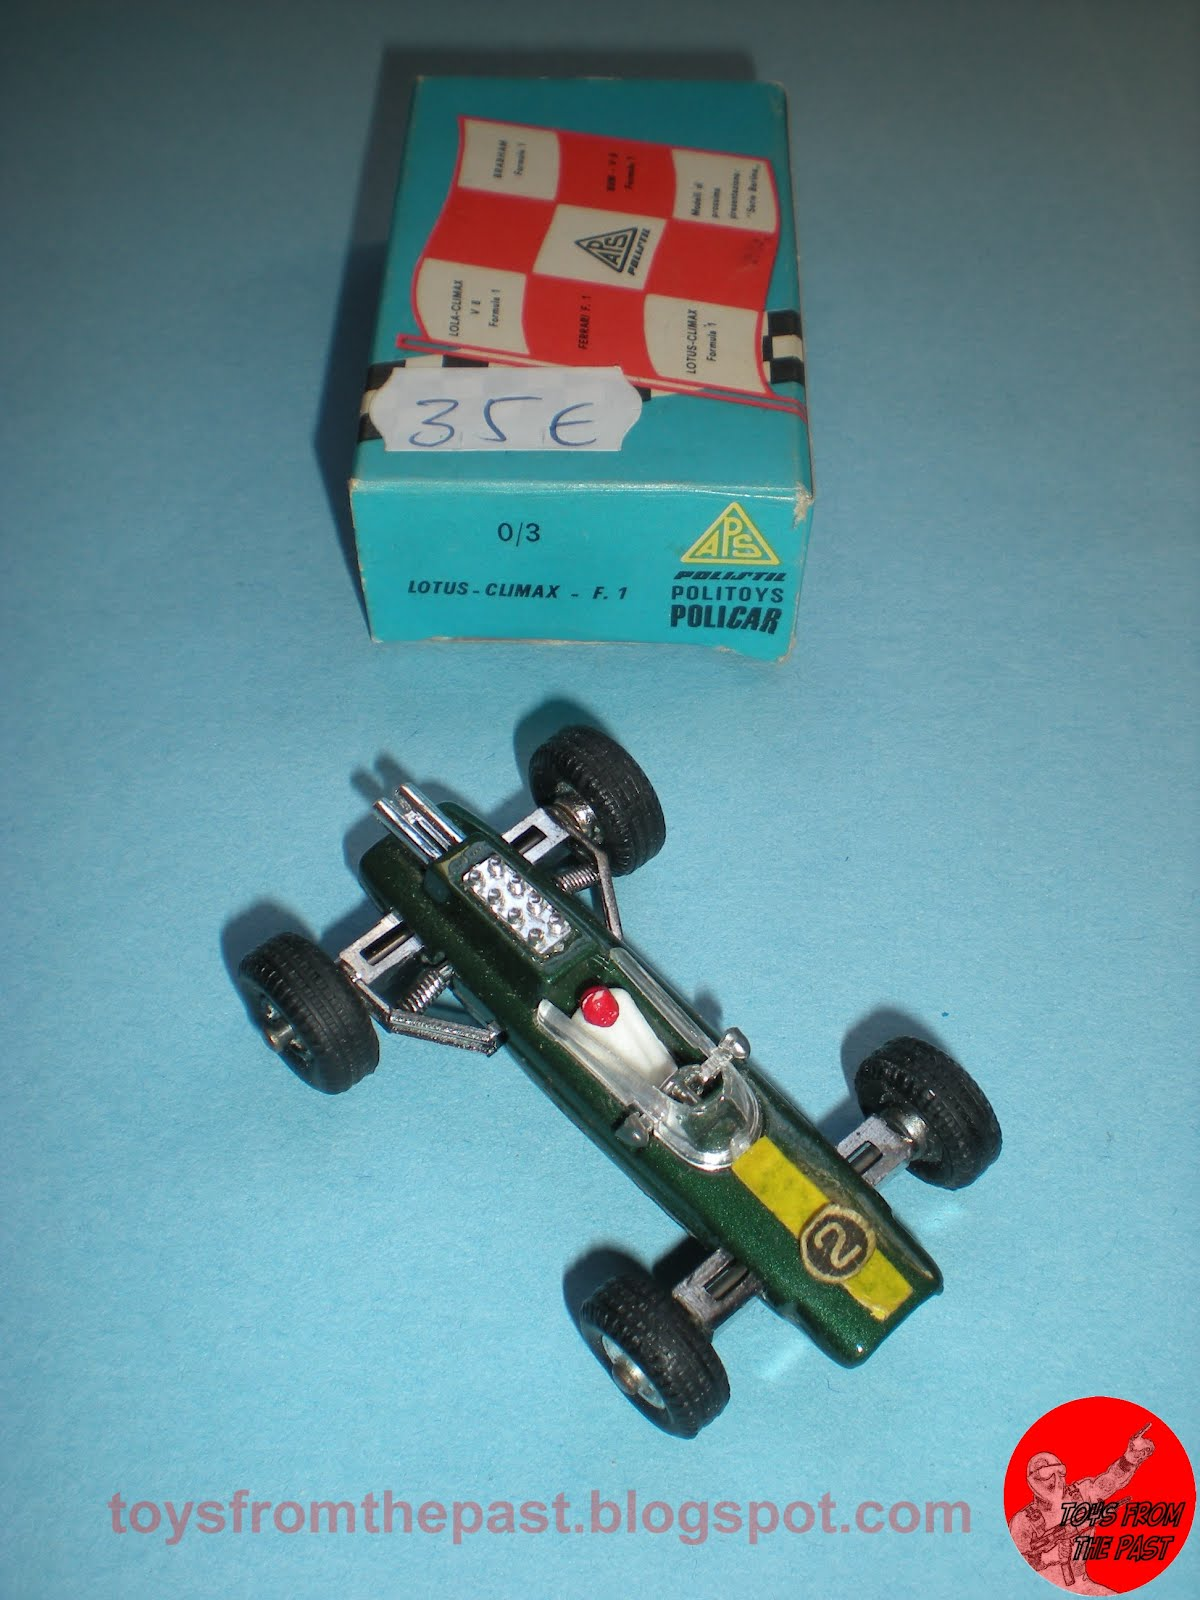 Penny 0/3 Lotus Climax F.1 (cc-by-nc-nd 3.0 toysfromthepast)